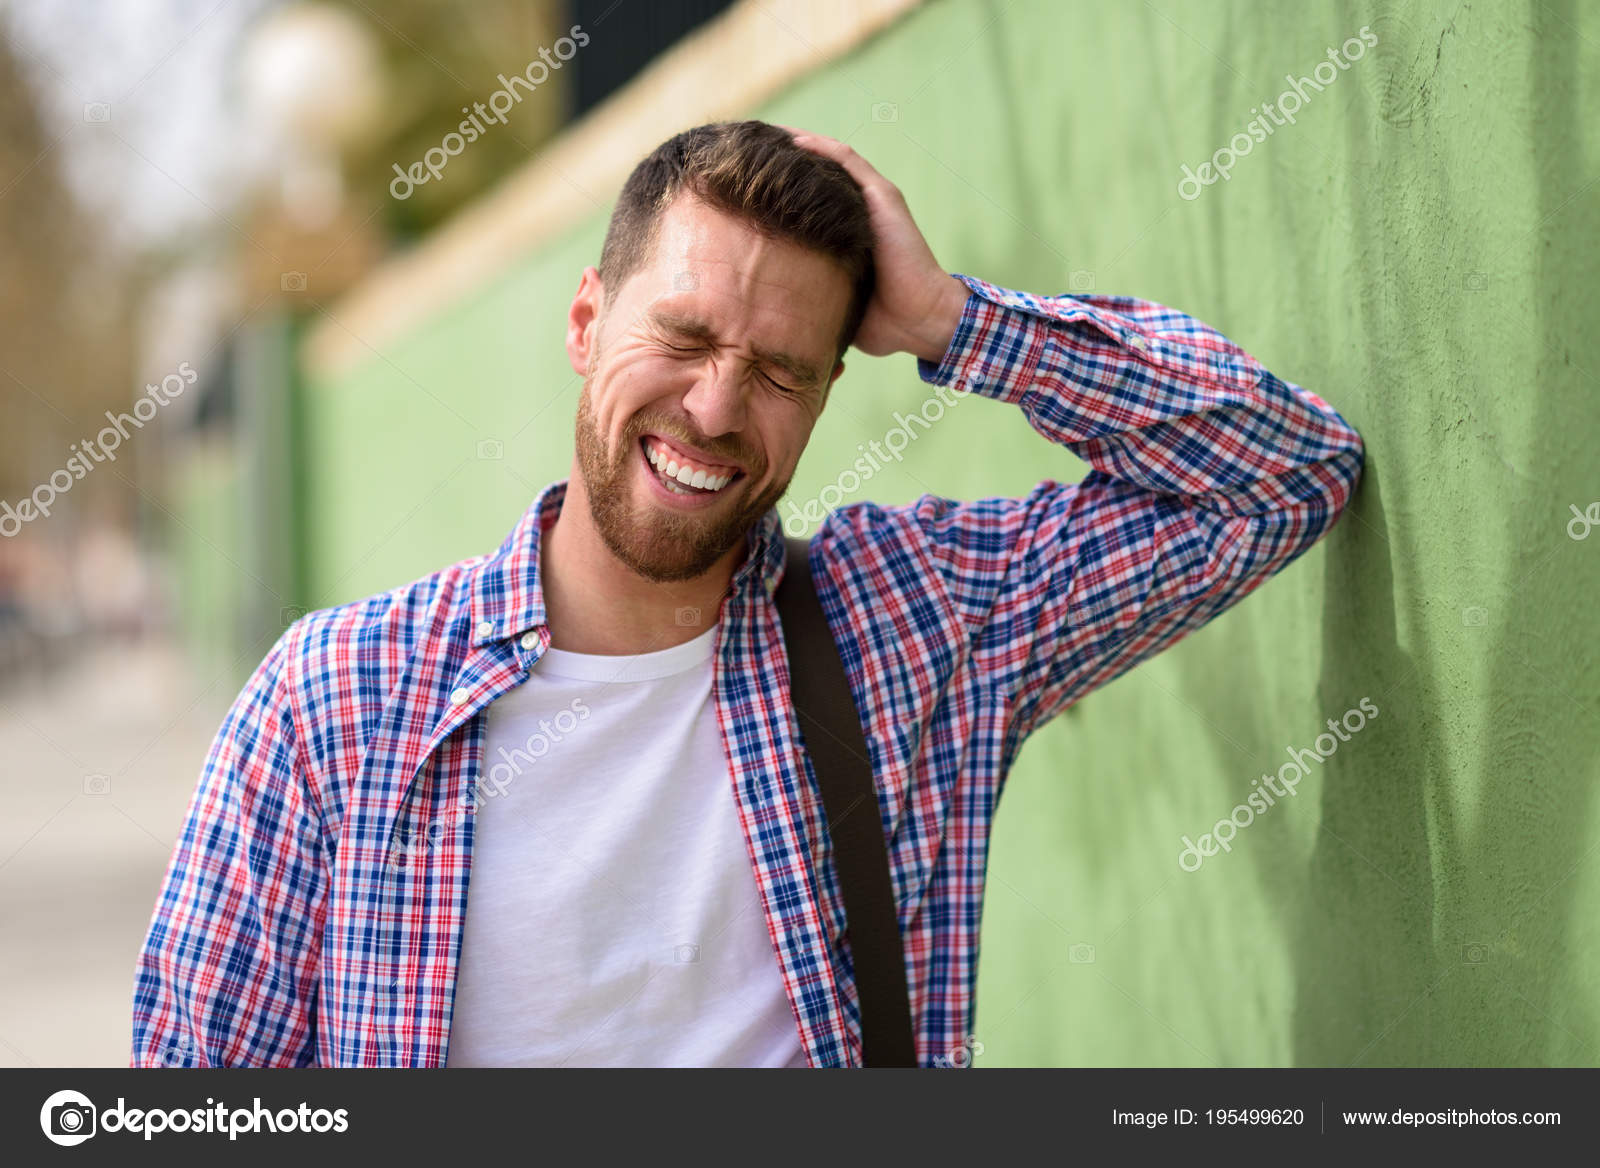 7cd47a4b Attractive young man laughing outdoors. Funny guy wearing casual clothes in  urban background. Lifestyle concept.